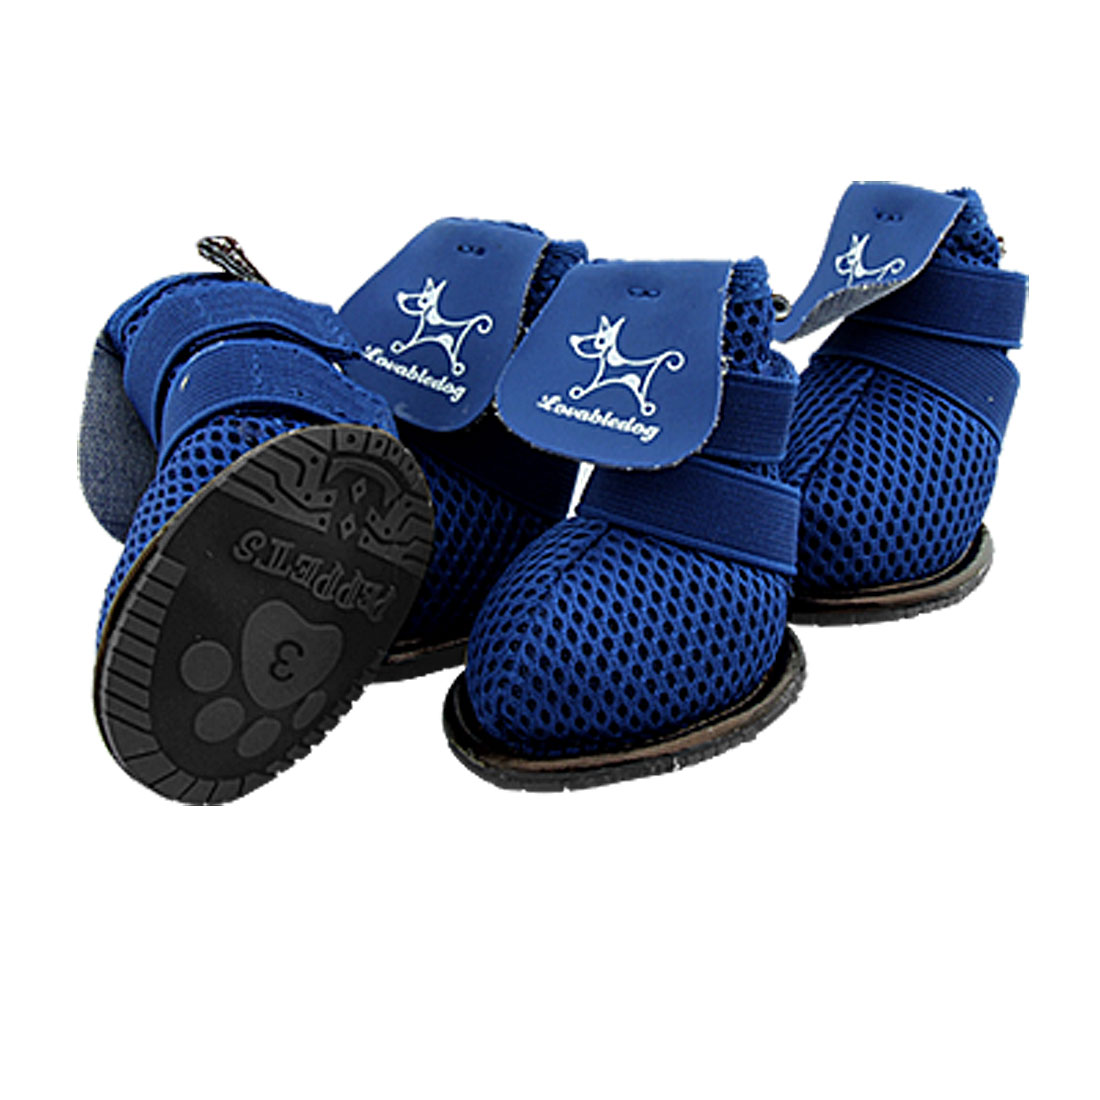 Protective Puppy Pet Dog Shoes Blue Boots Booties Size 3